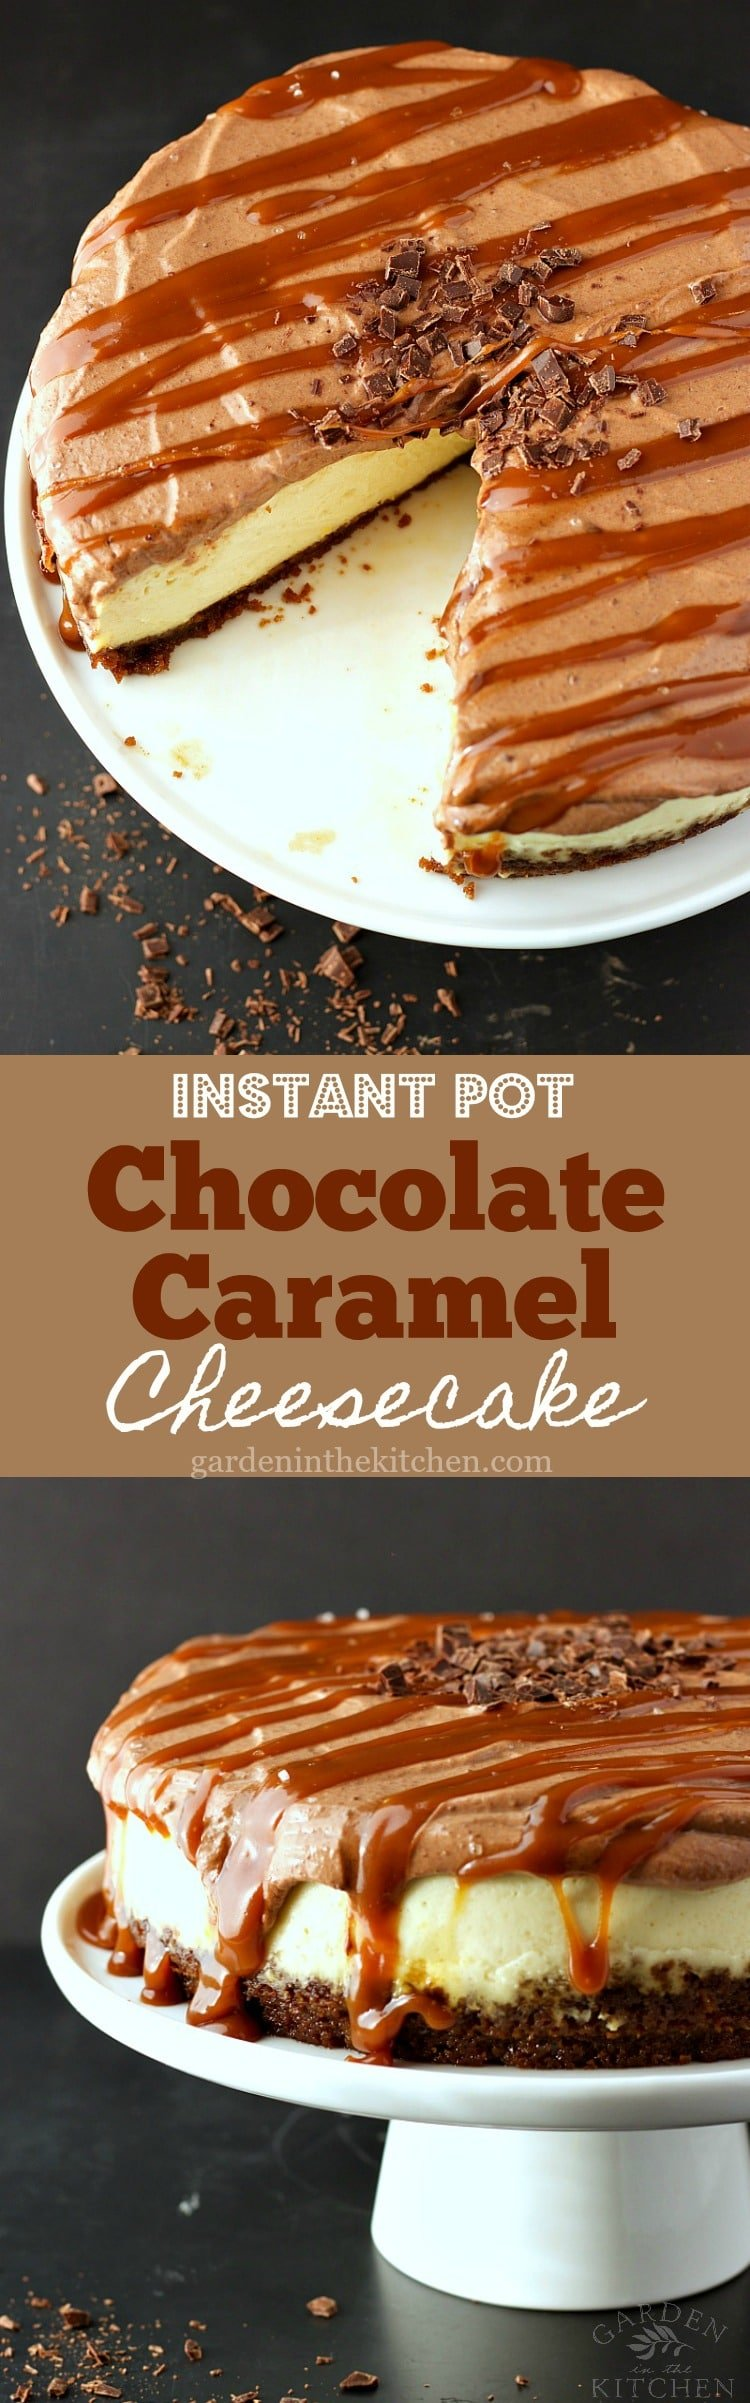 Instant Pot Chocolate Caramel Cheesecake | Garden in the Kitchen